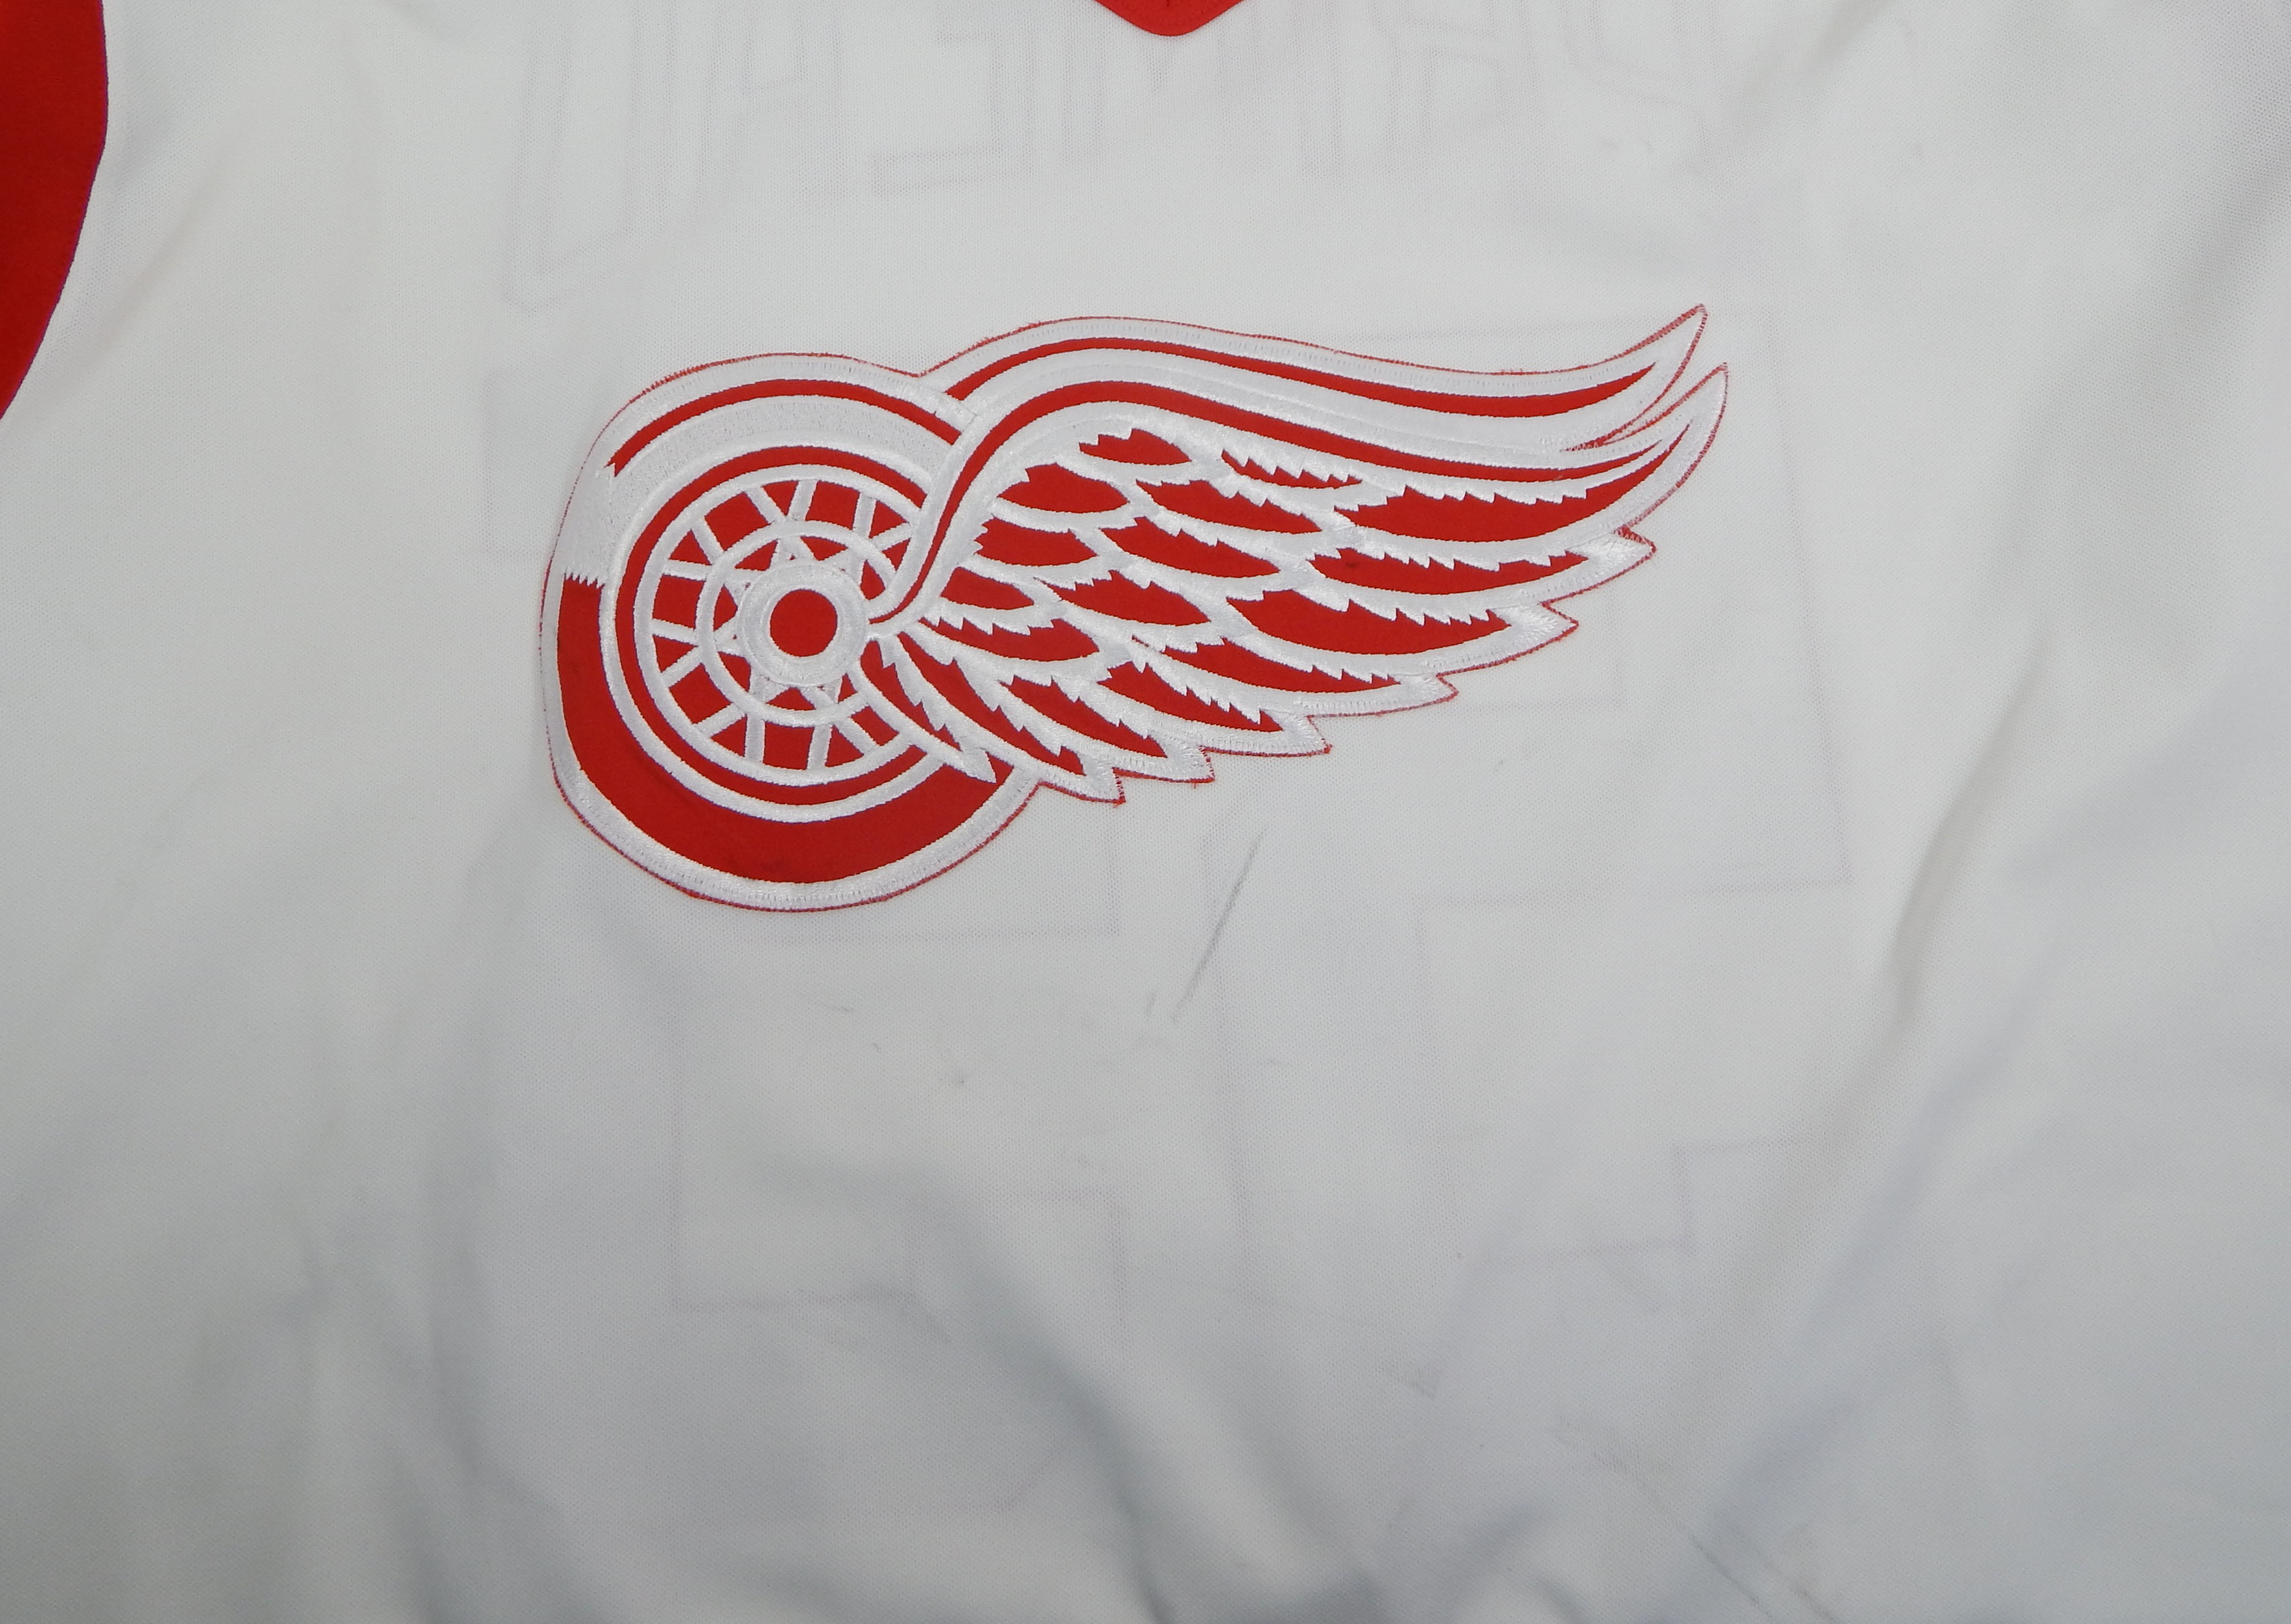 thumbnail 7 - 1994-95-Detroit-Red-Wings-Keith-Primeau-55-Game-Used-White-Jersey